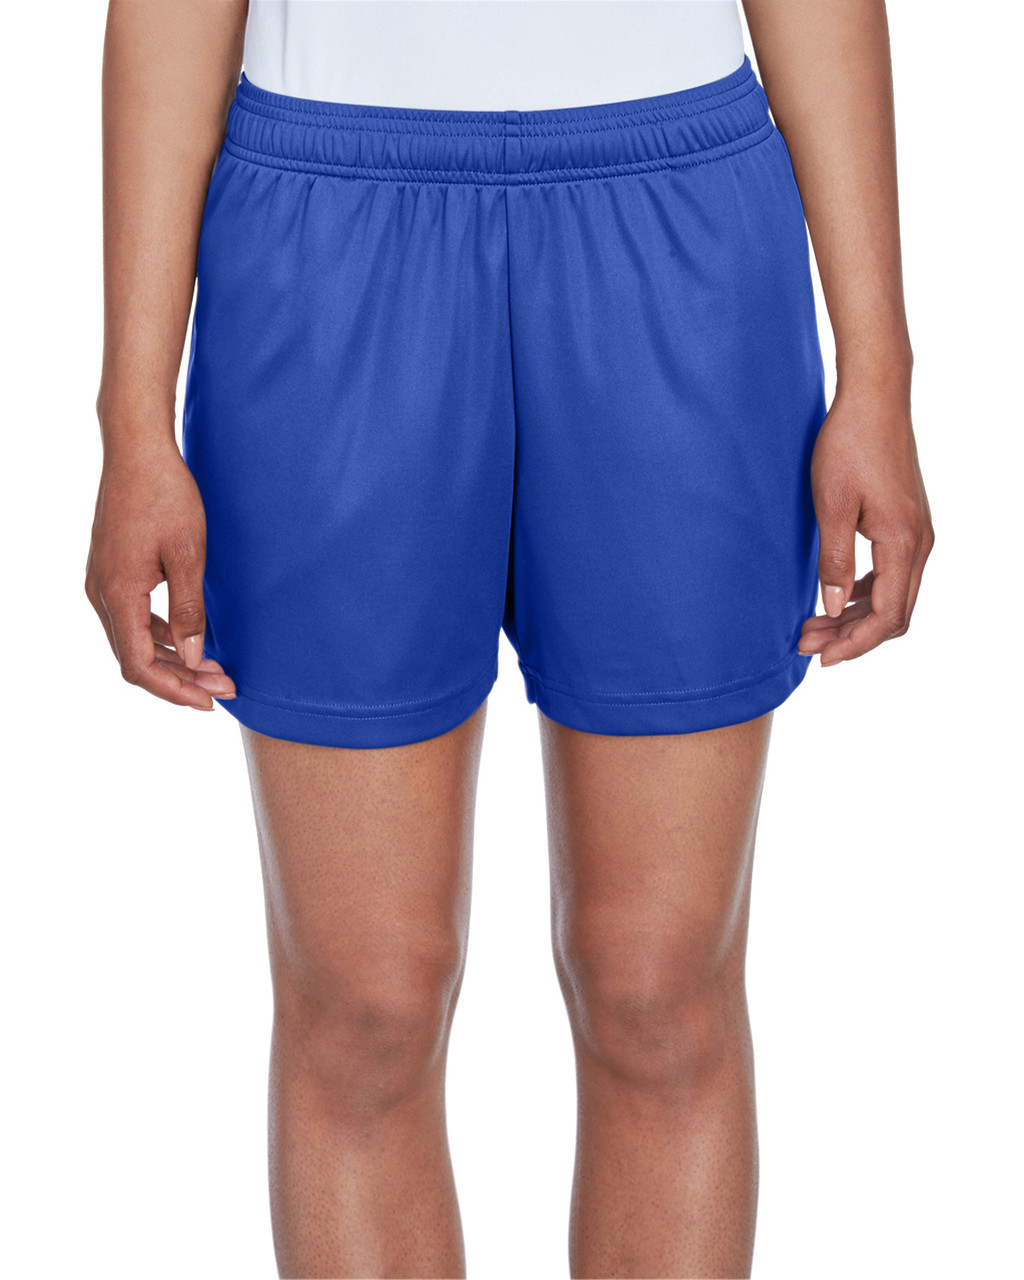 Sport Royal - TT11SHW Team 365 Ladies' Zone Performance Short | T-shirt.ca